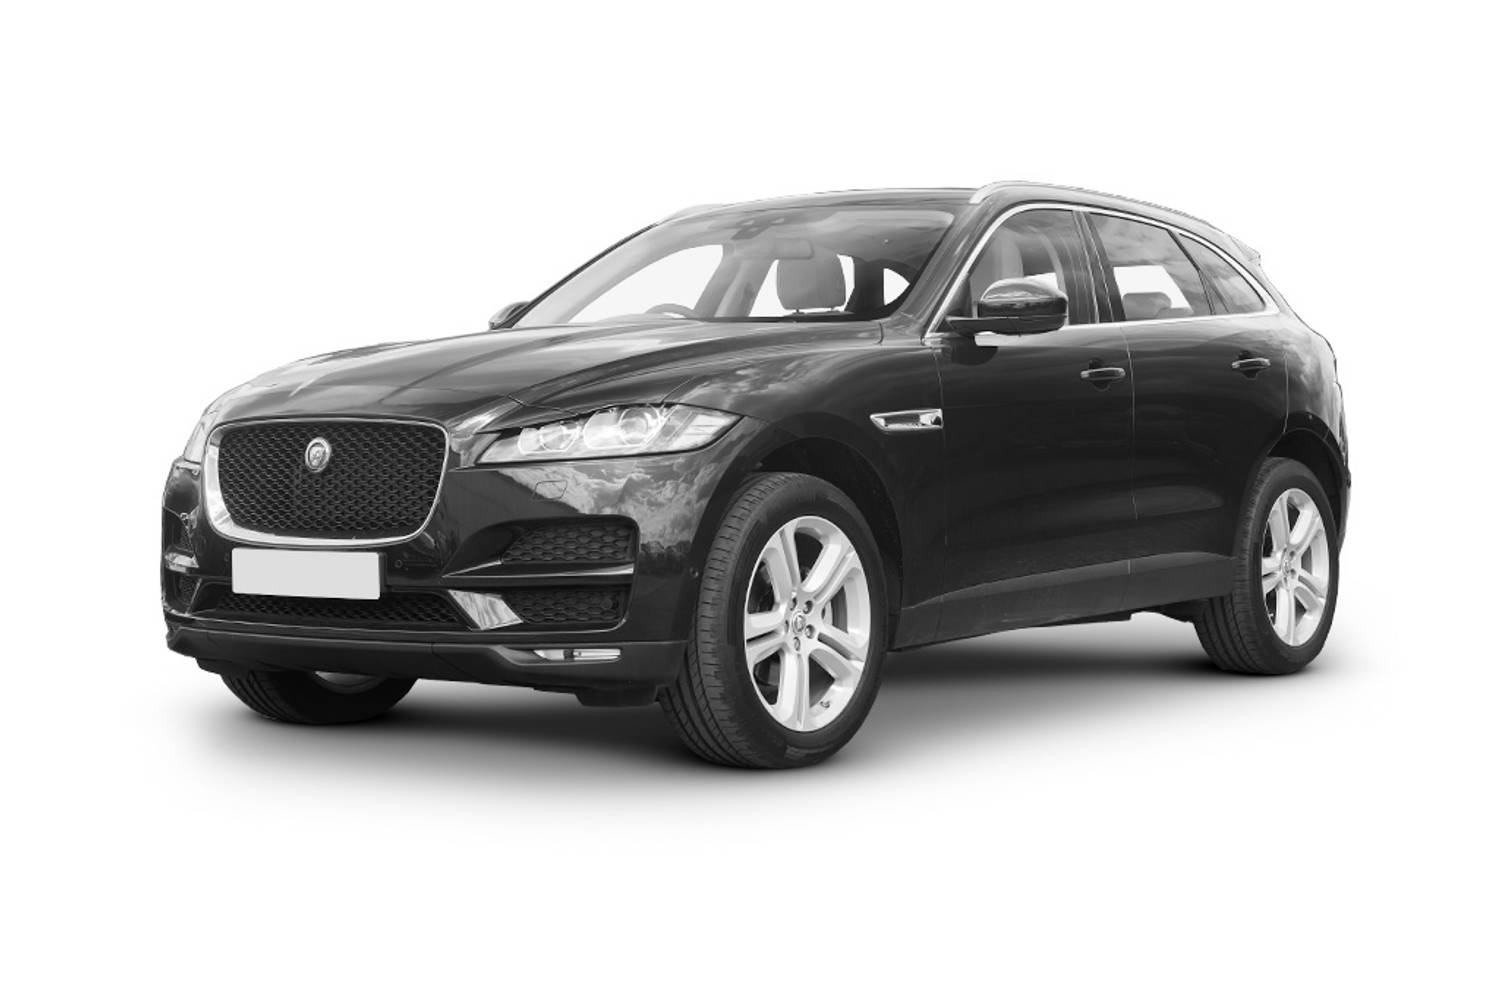 Jaguar F Pace 2 0d 180 Ps Chequered Flag 5 Door Auto Awd Ref 055